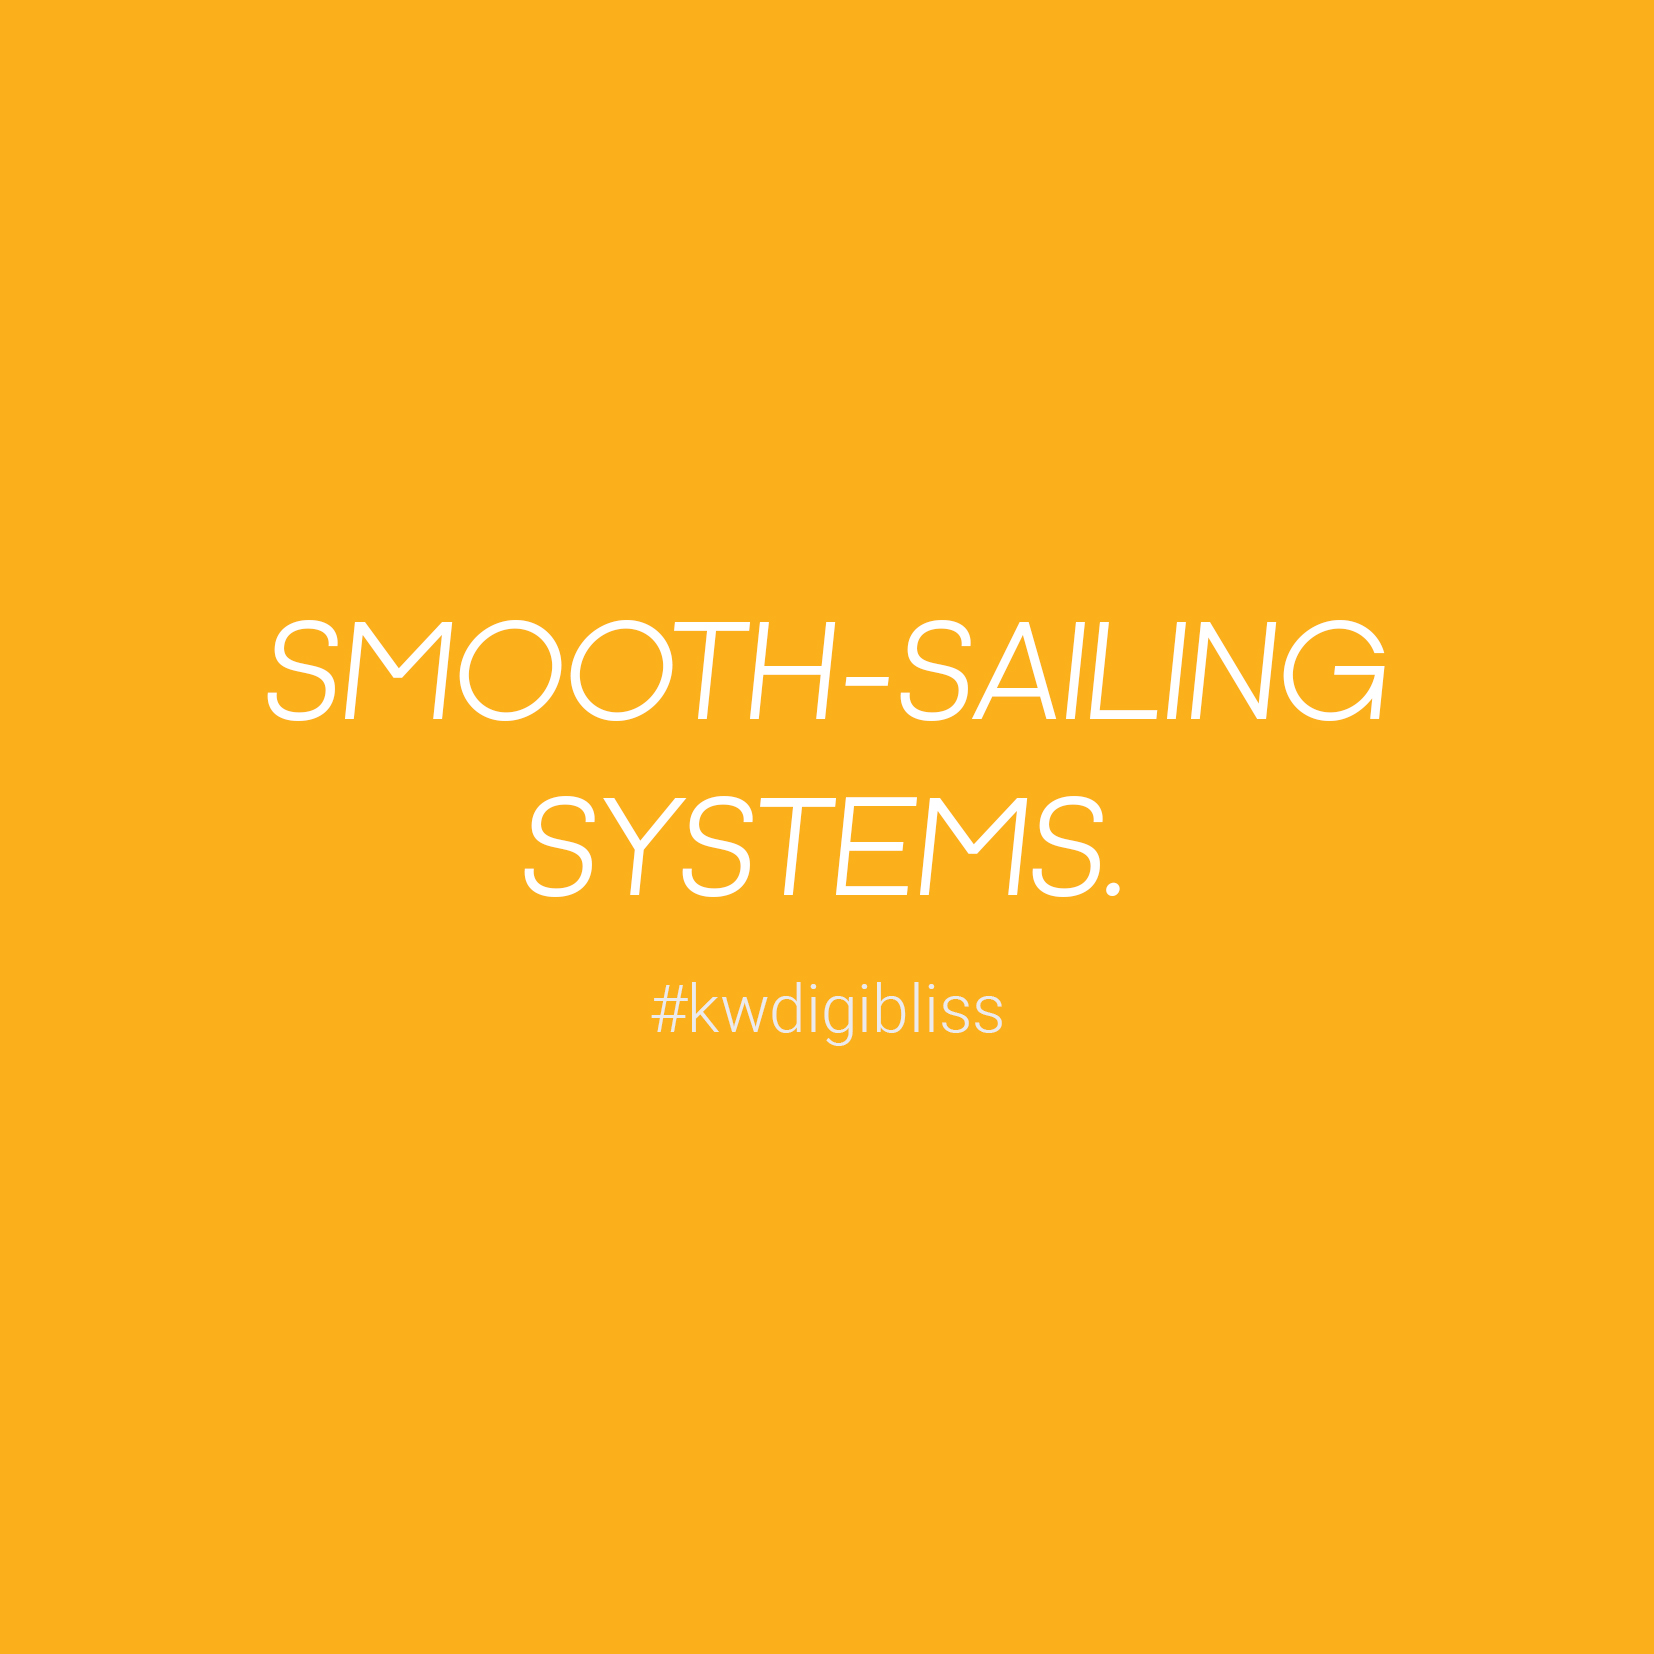 Smooth-Sailing Systems.